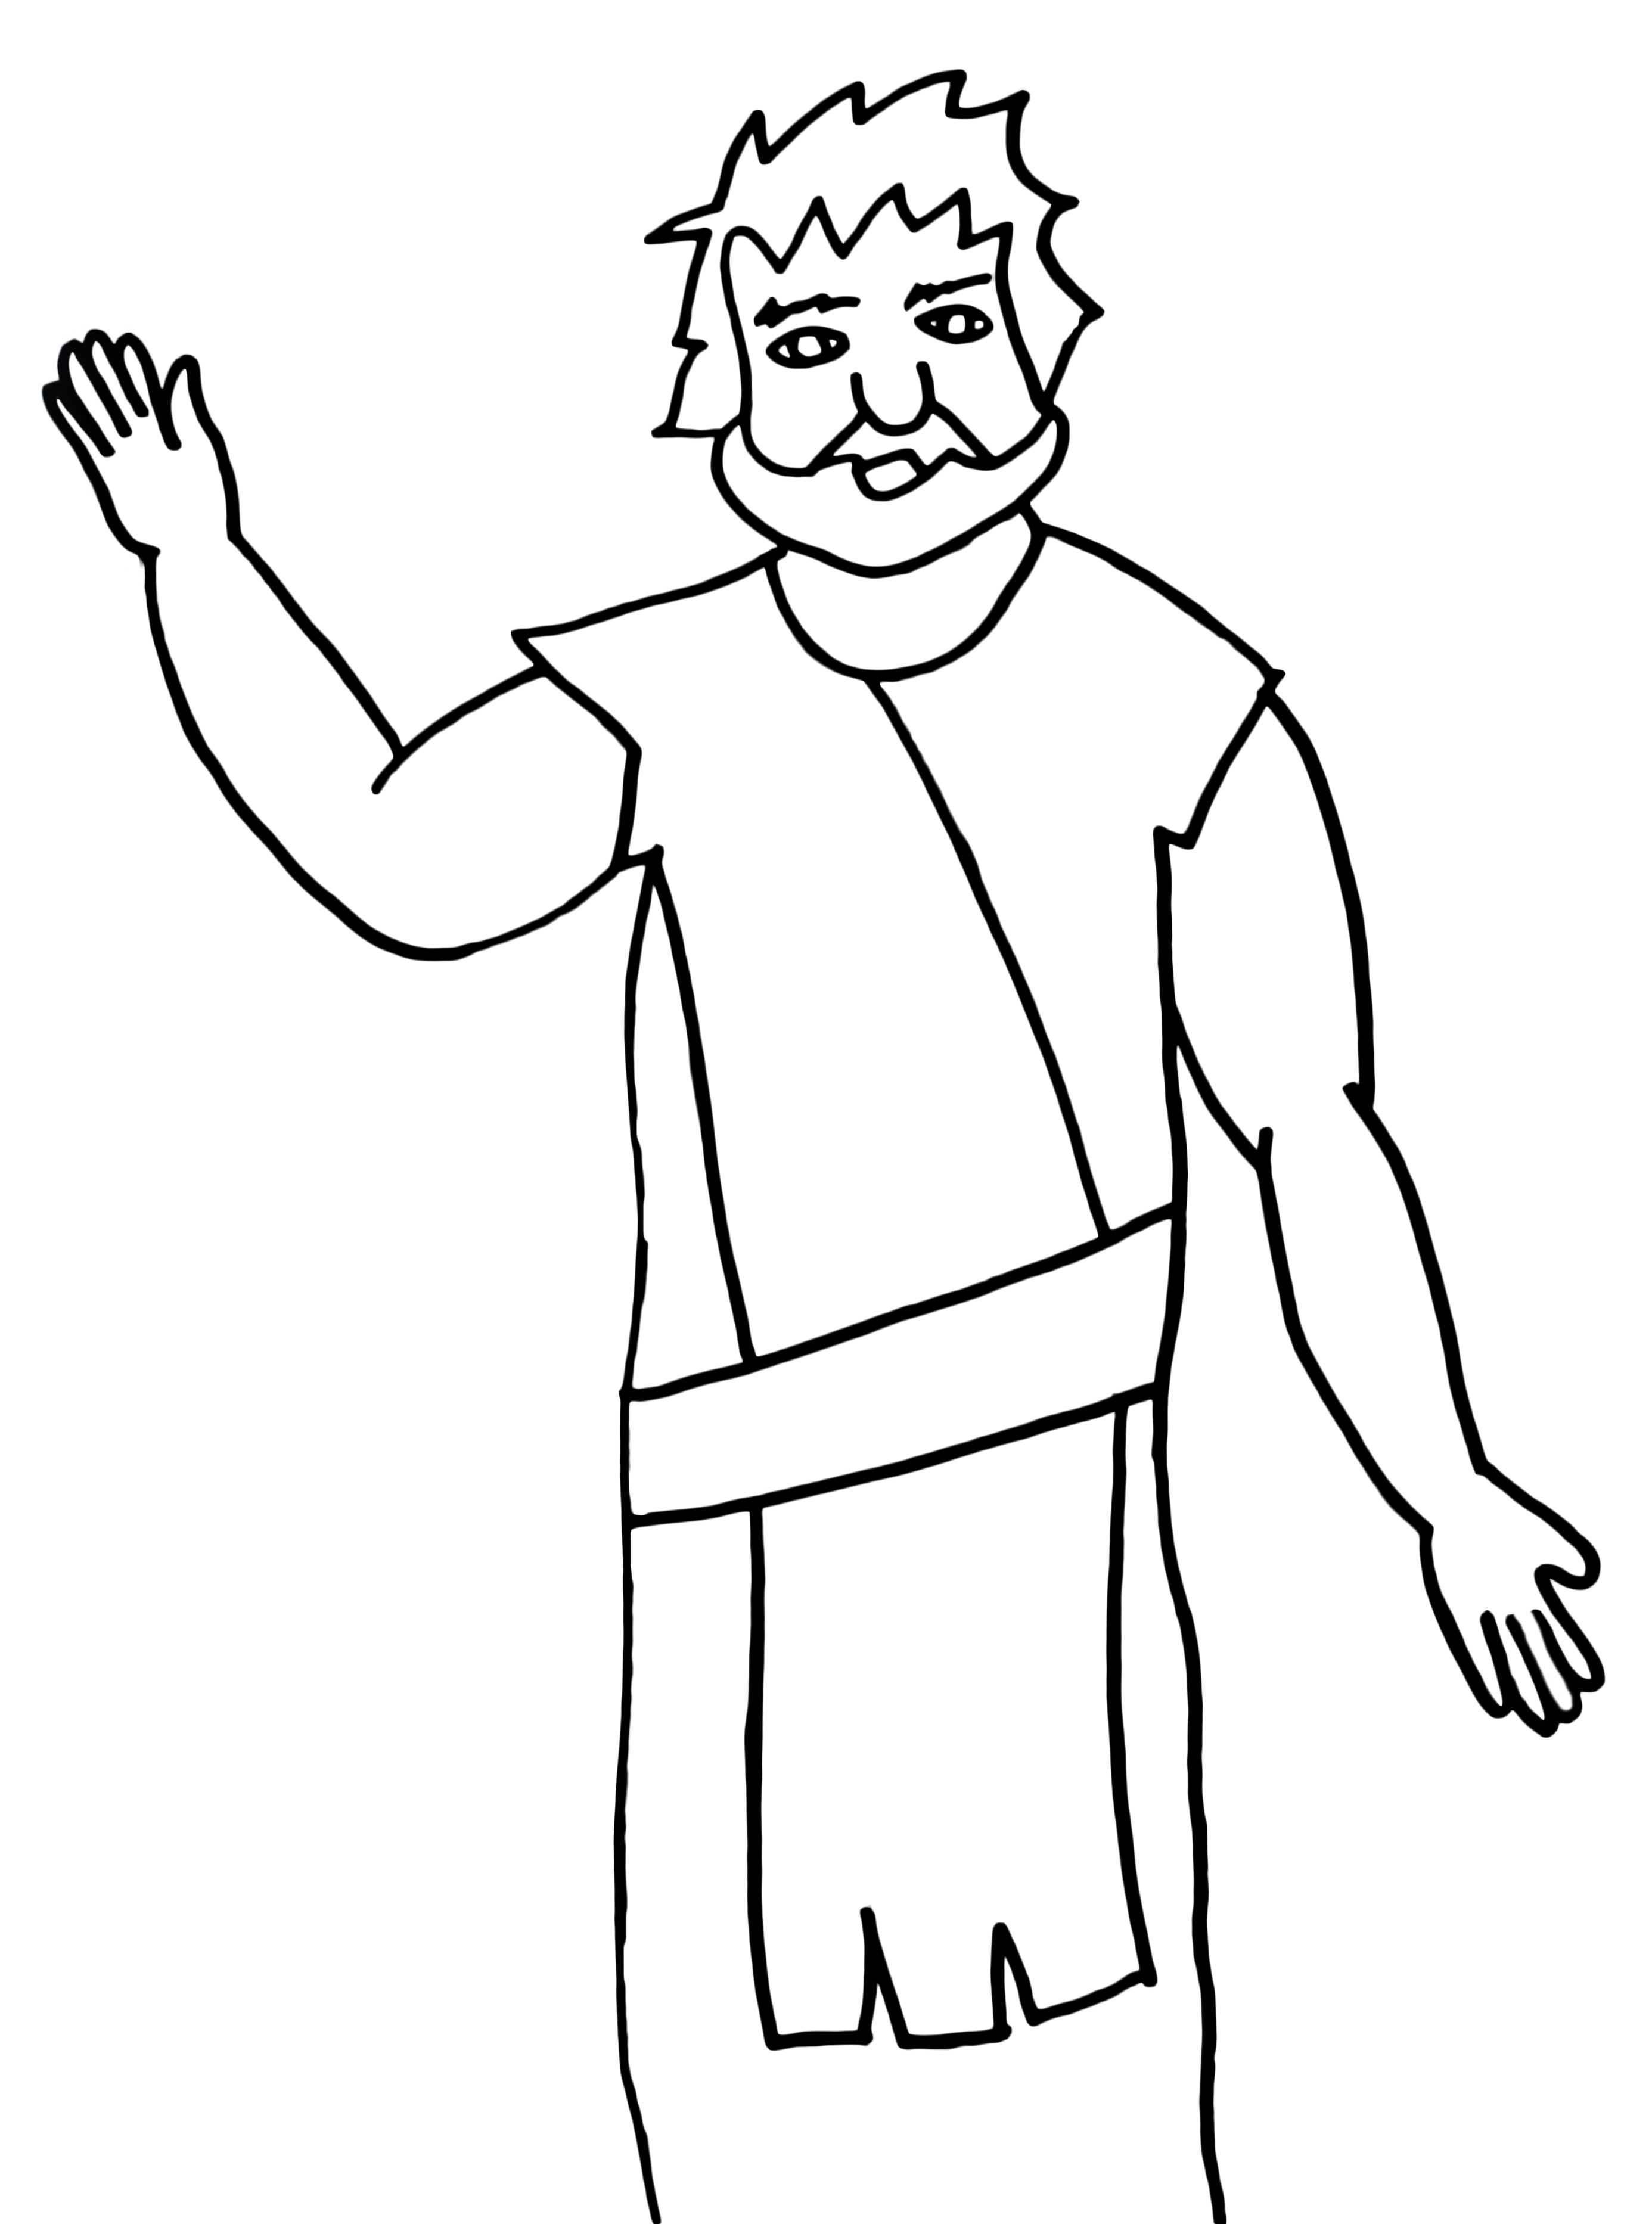 jesus drawing easy at getdrawings com free for personal use jesus rh getdrawings com lds clip art jesus christ lds clipart jesus easter